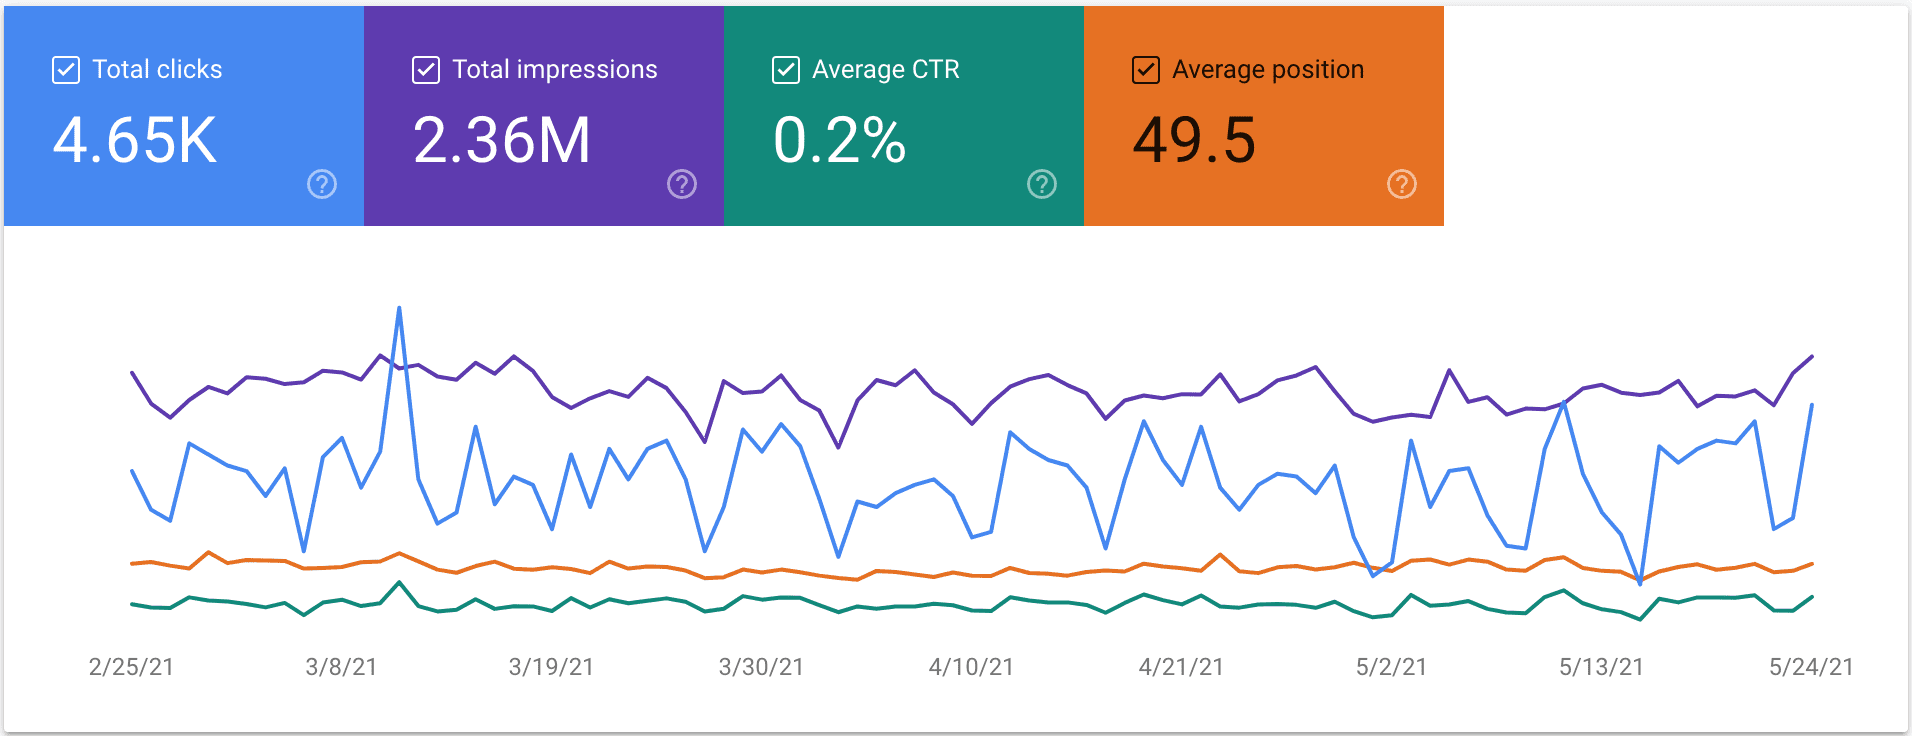 Performance tab line graph with four metrics: clicks, impressions, ctr, and average position